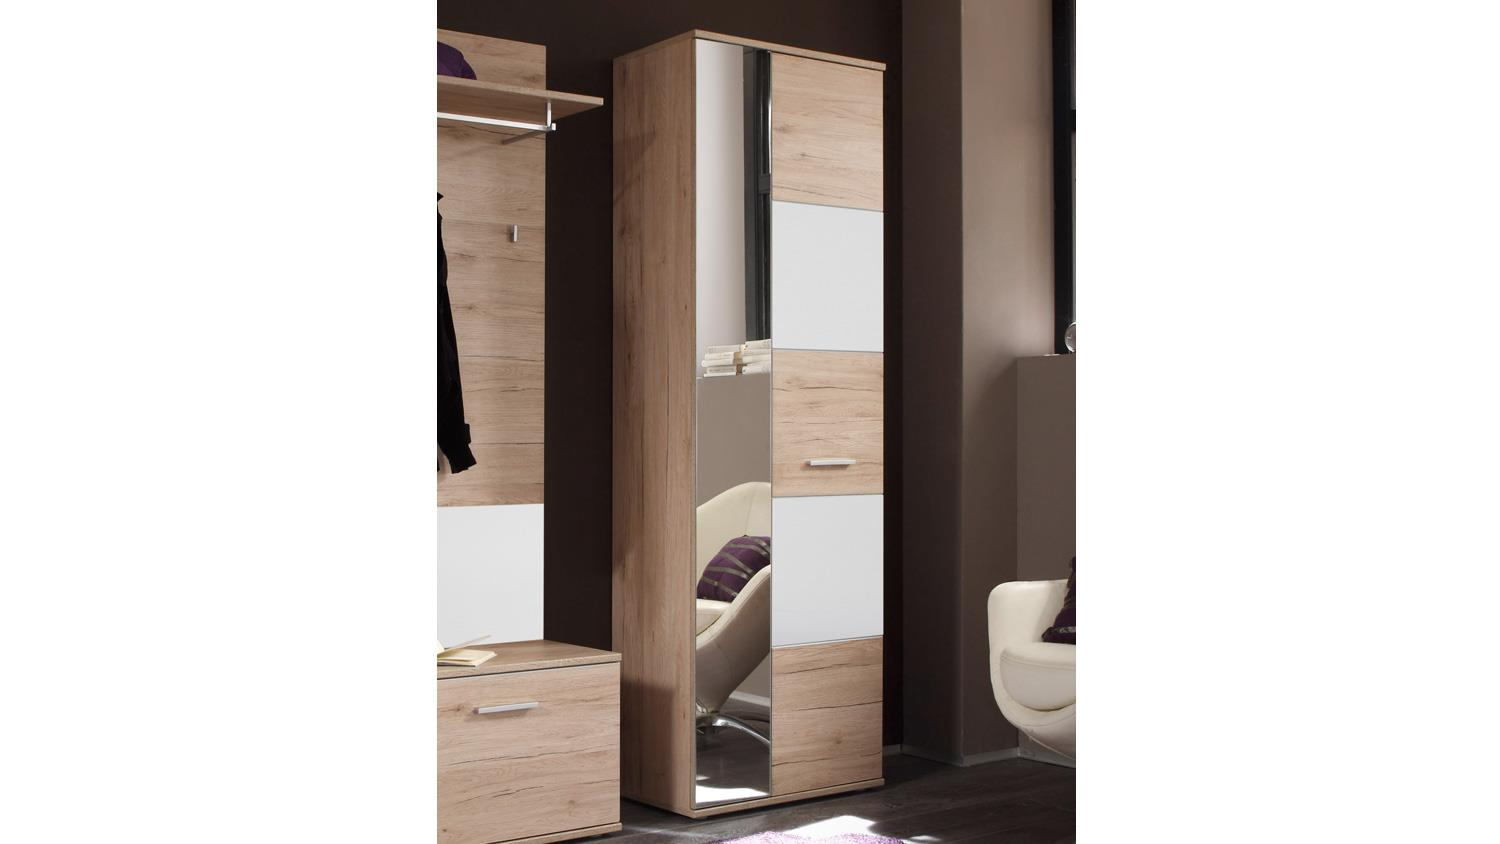 hochschrank linate dielenschrank 1 trg san remo eiche wei mit spiegel. Black Bedroom Furniture Sets. Home Design Ideas